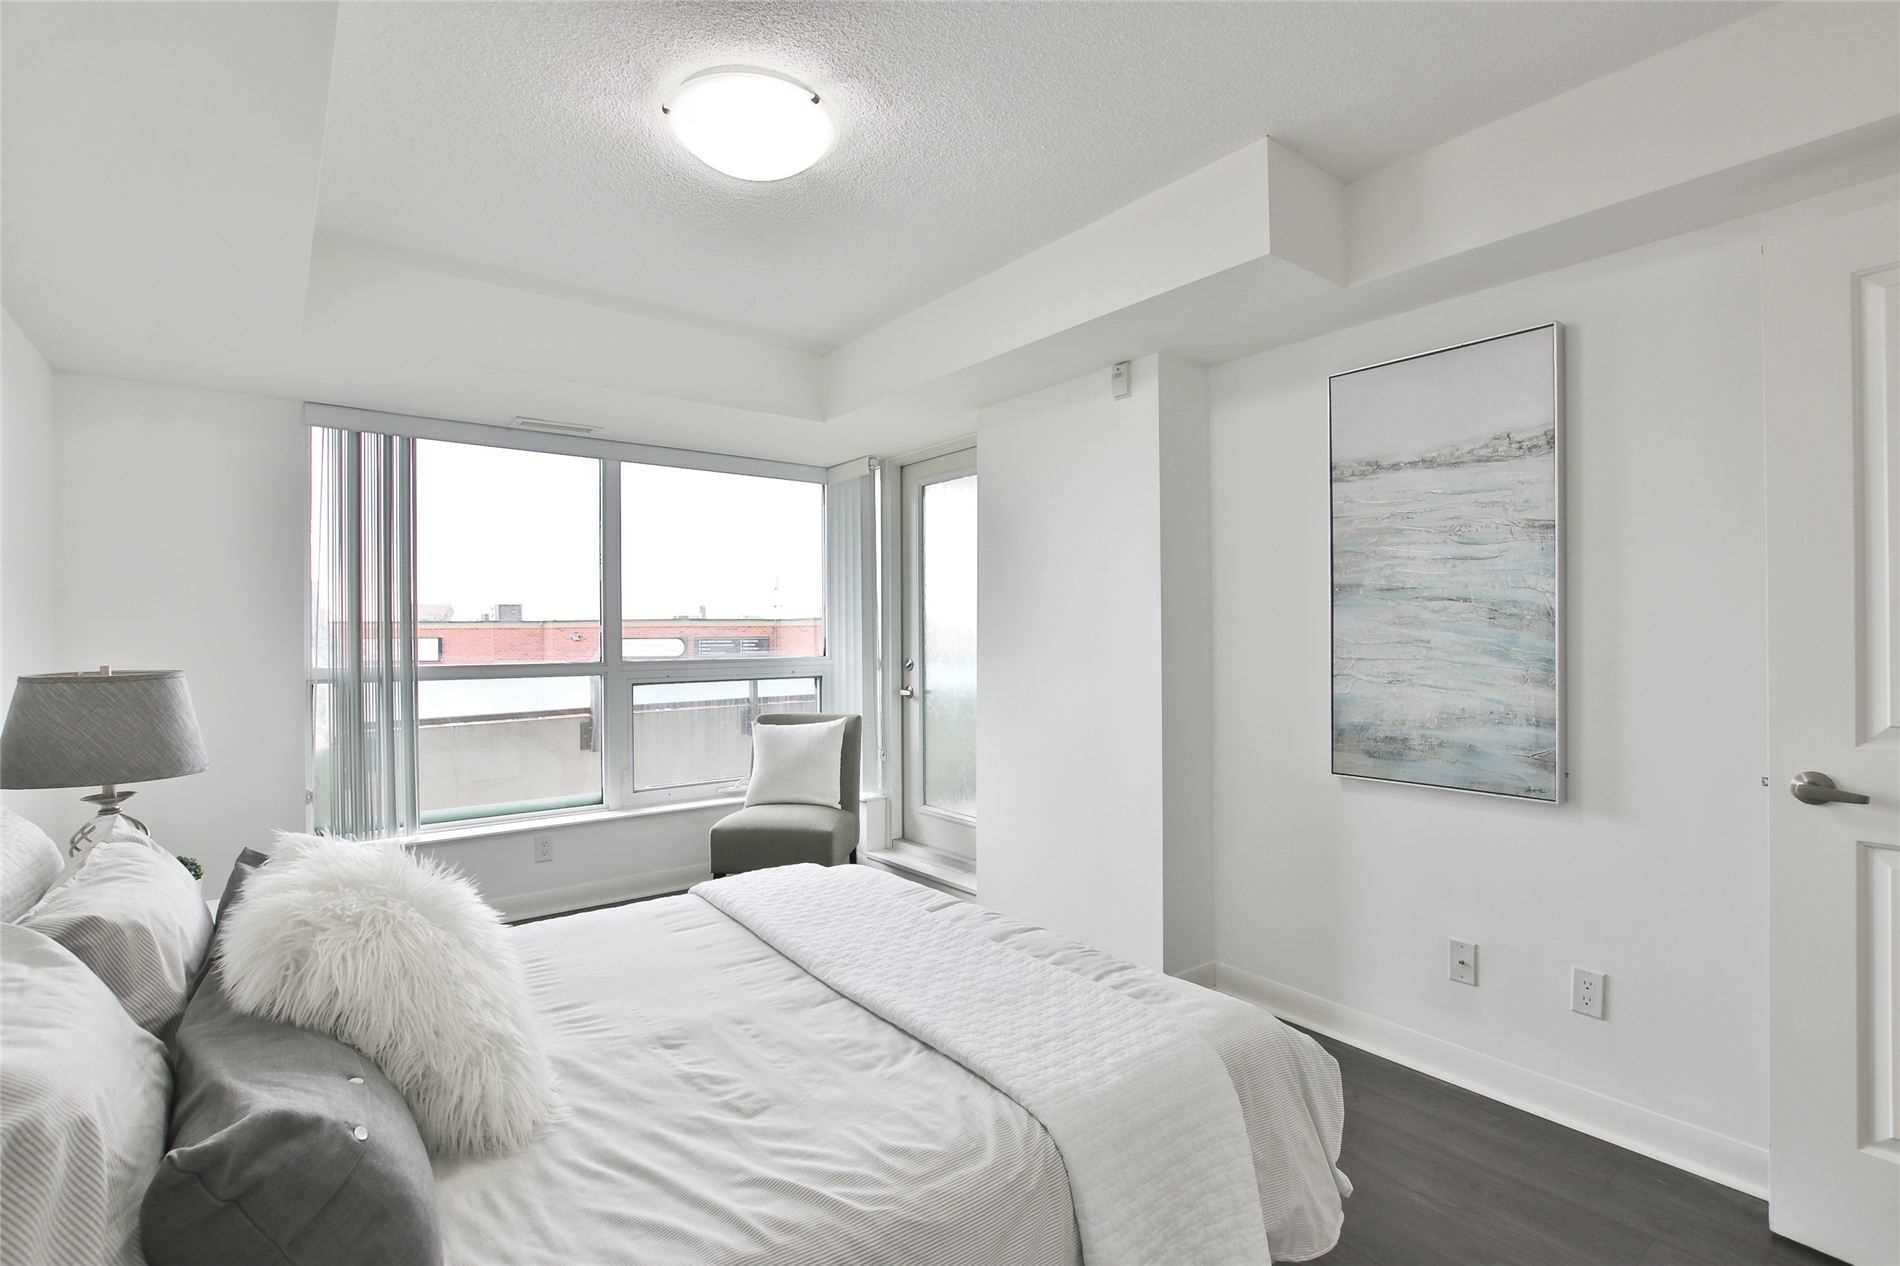 209 - 75 Norman Bethune Ave - Beaver Creek Business Park Condo Apt for sale, 2 Bedrooms (N5305489) - #13